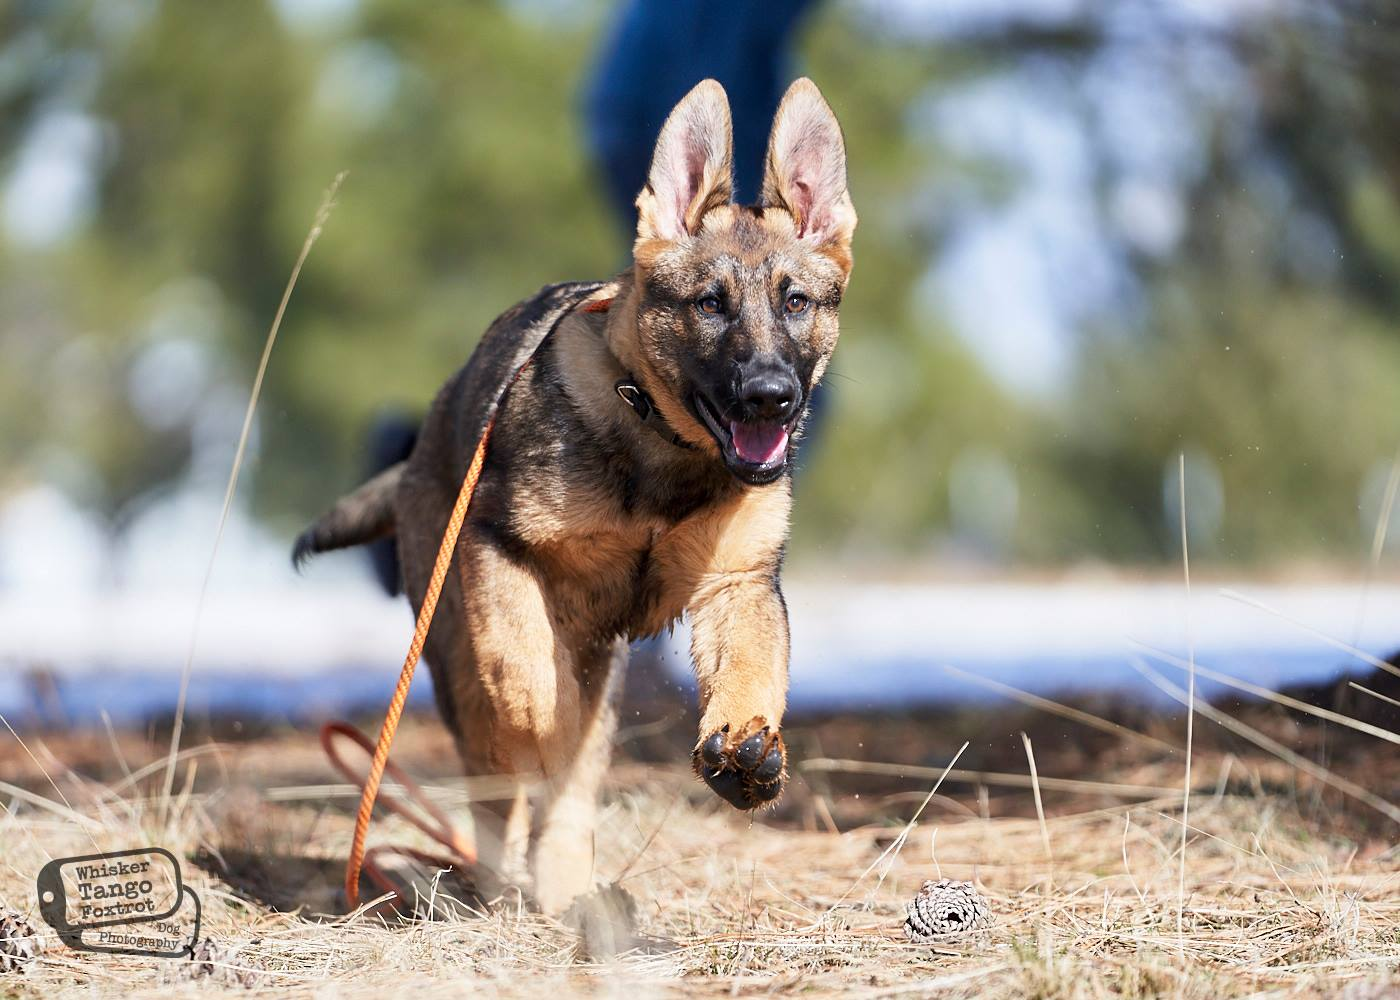 ethical k9 German shepherd breeders